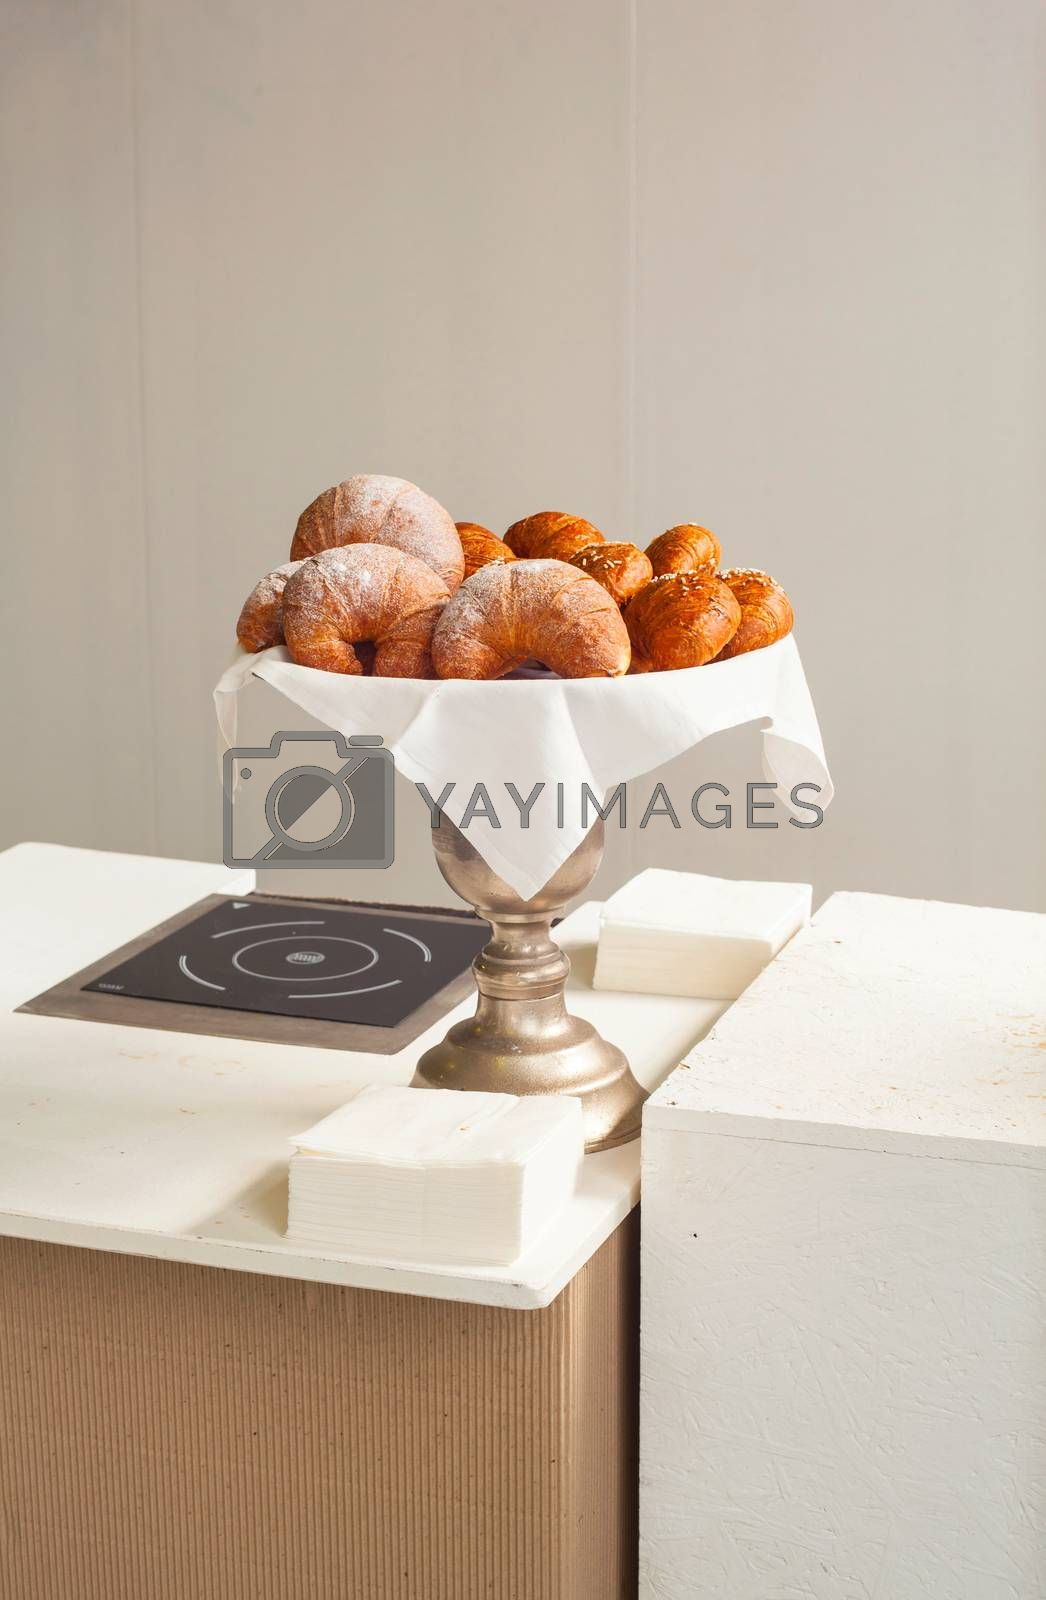 View of Italian croissants on silver tray